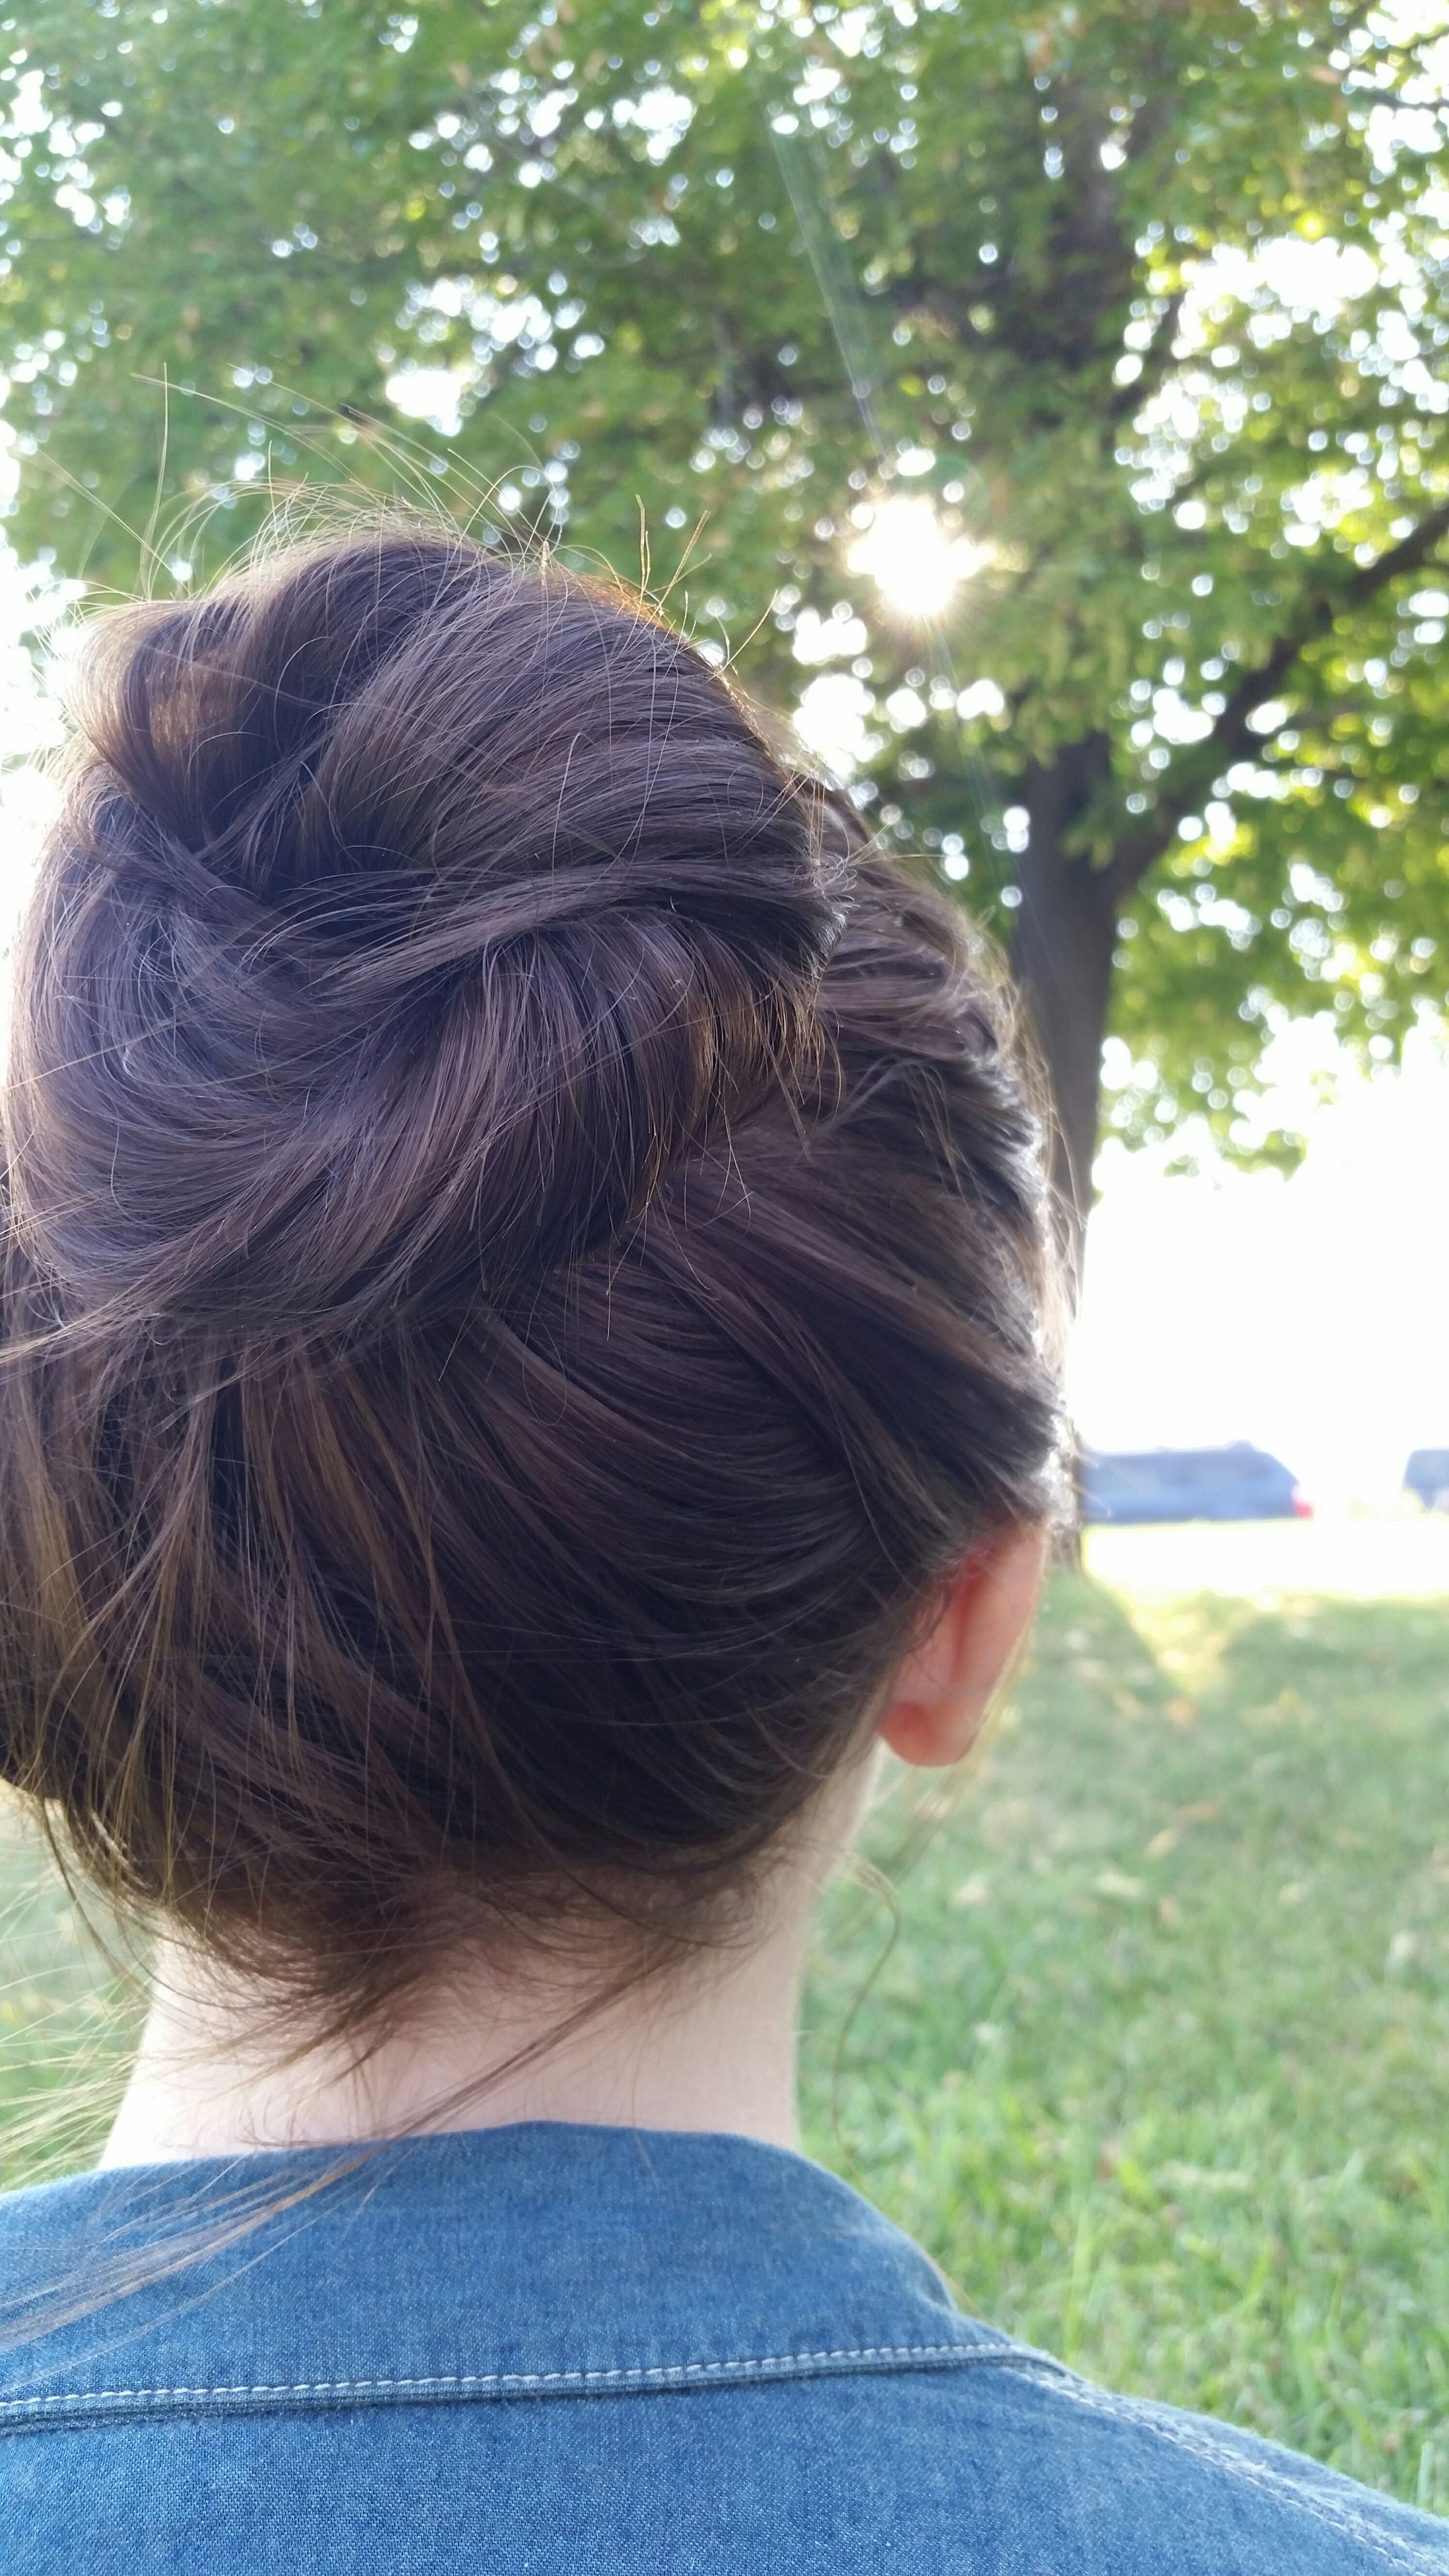 rear view, one person, real people, day, outdoors, headshot, tree, women, childhood, close-up, nature, people